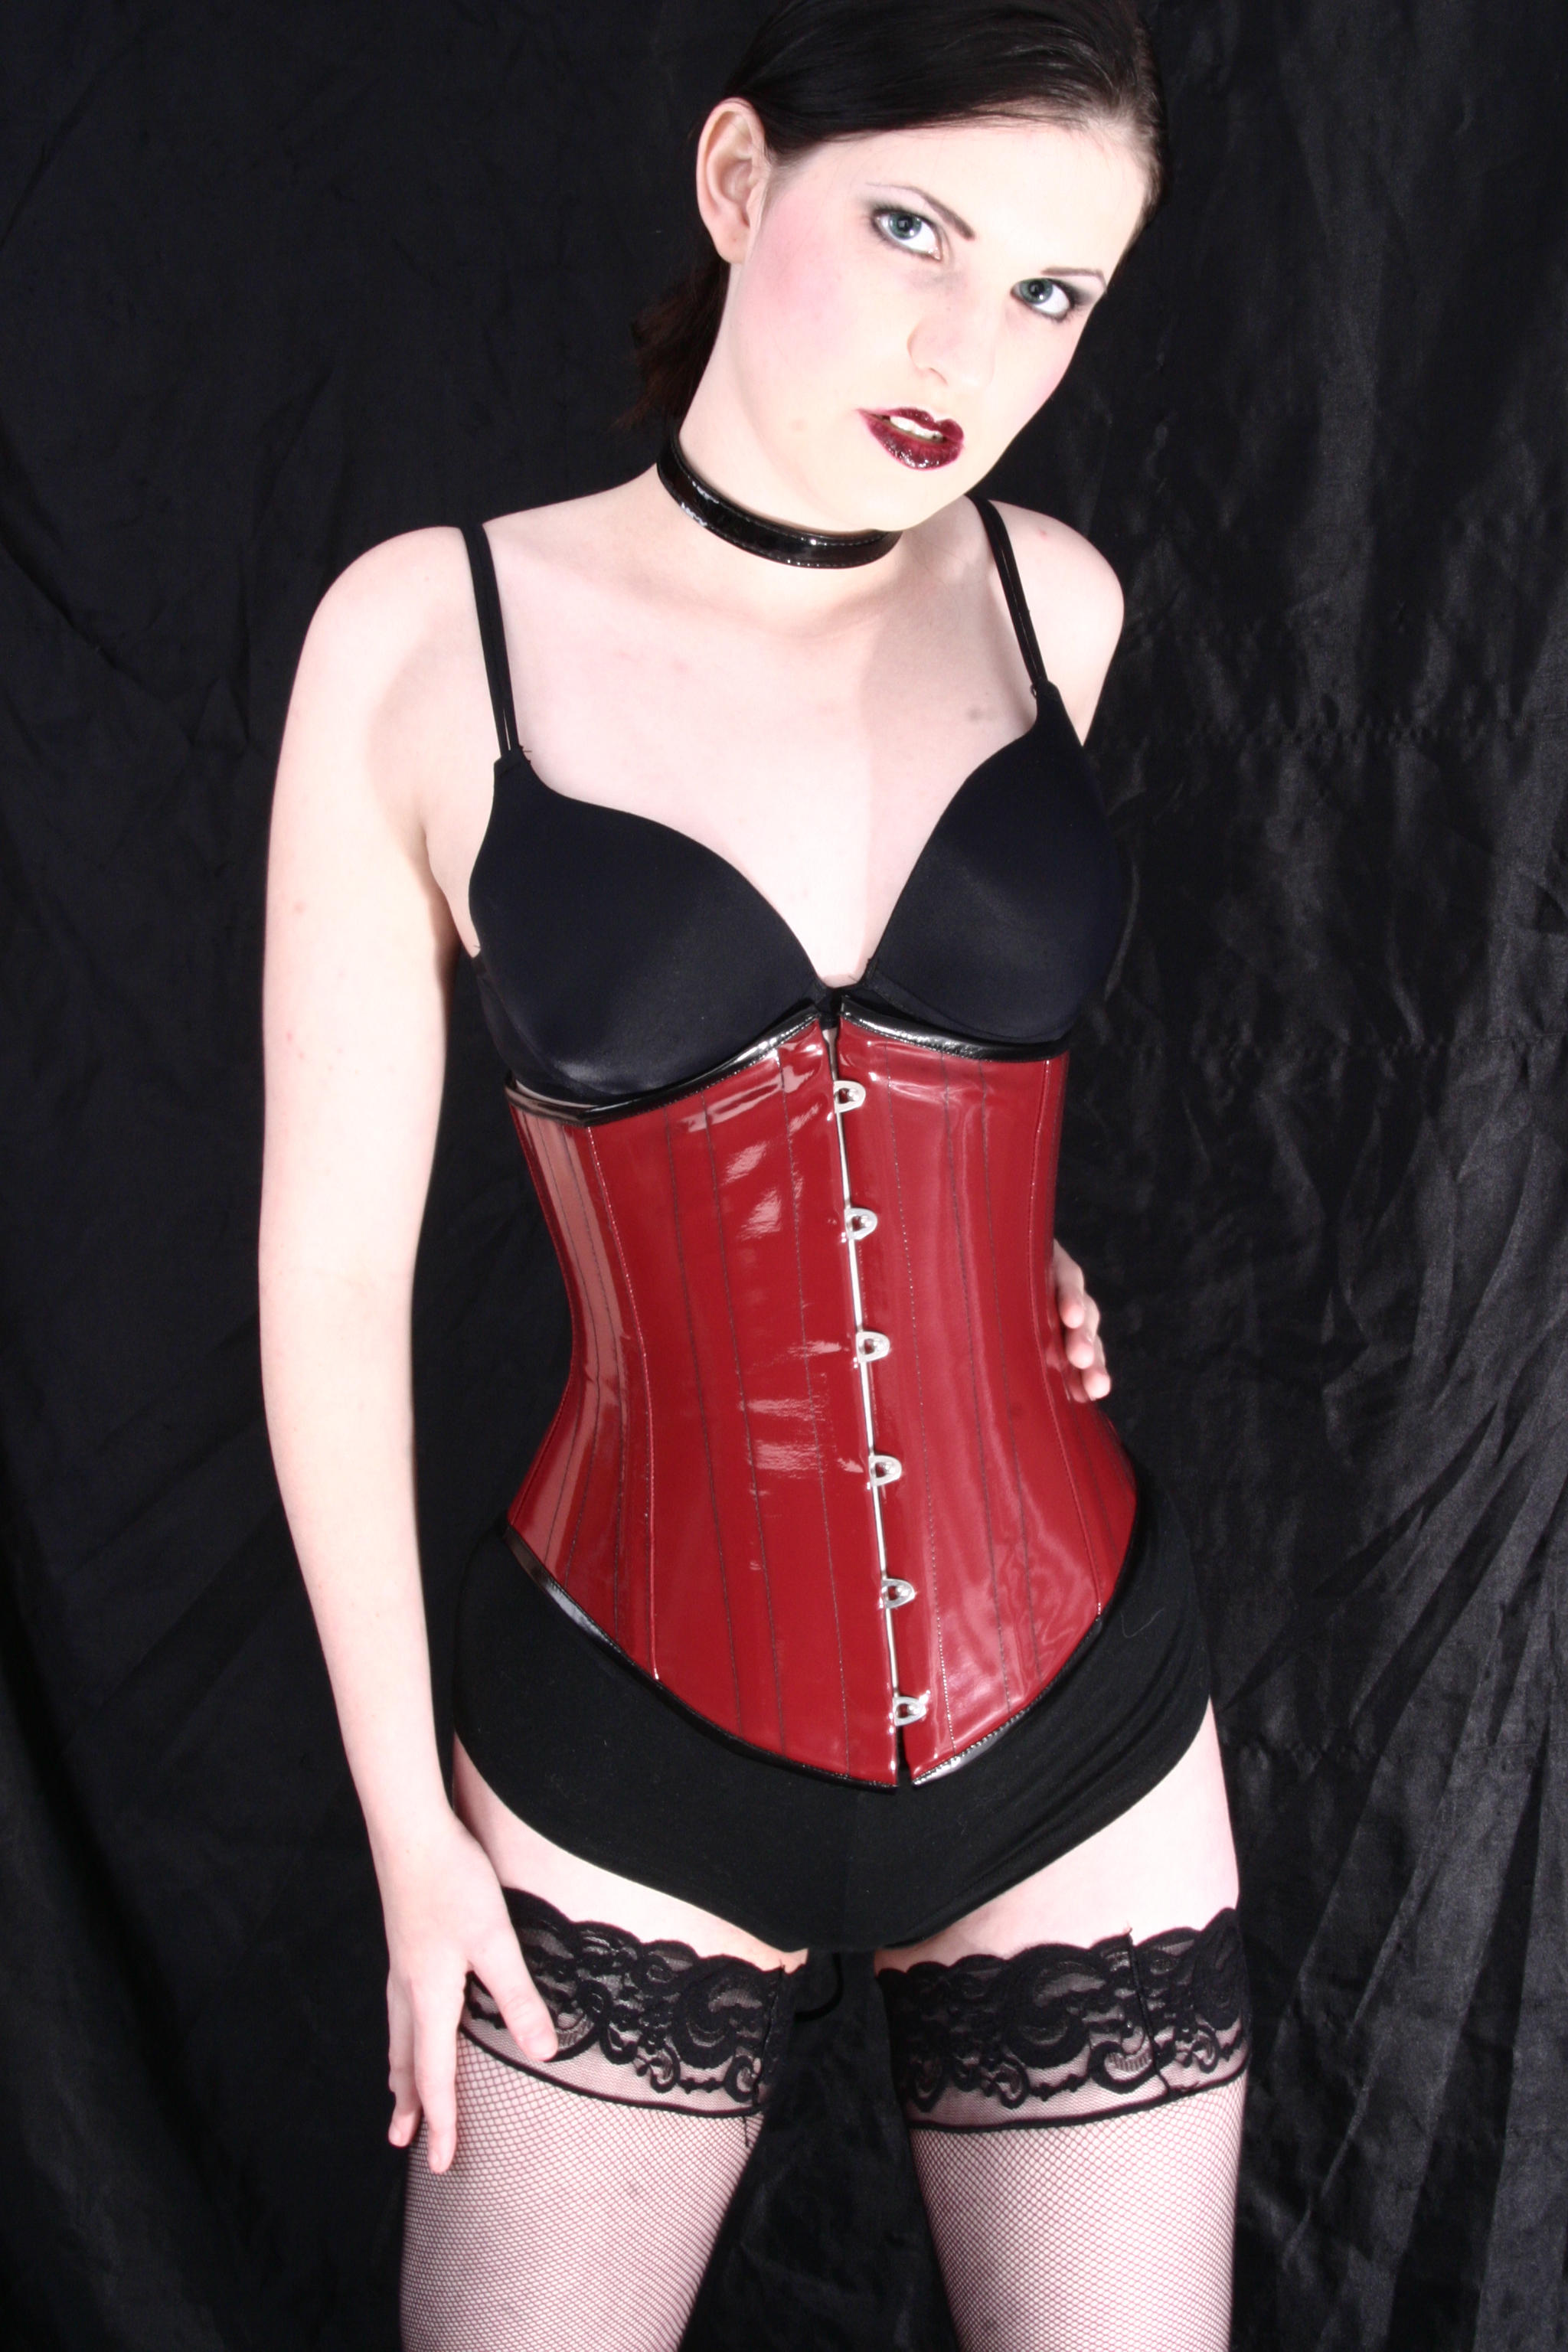 Girl in Red Corset Stock 1 by kristyvictoria